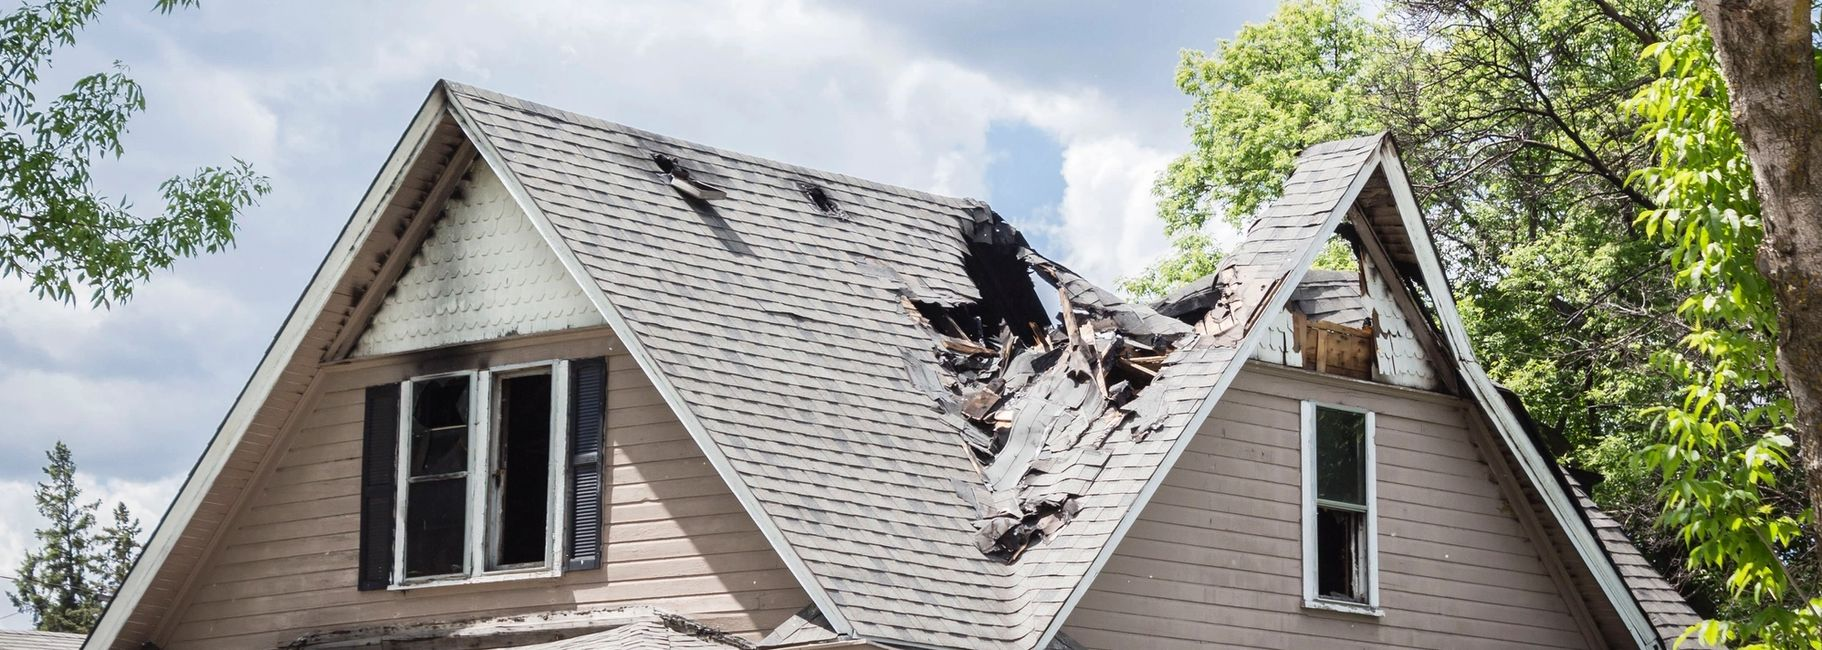 Roof Damage Storm Damage Roof Replacement Jacksonville Florida